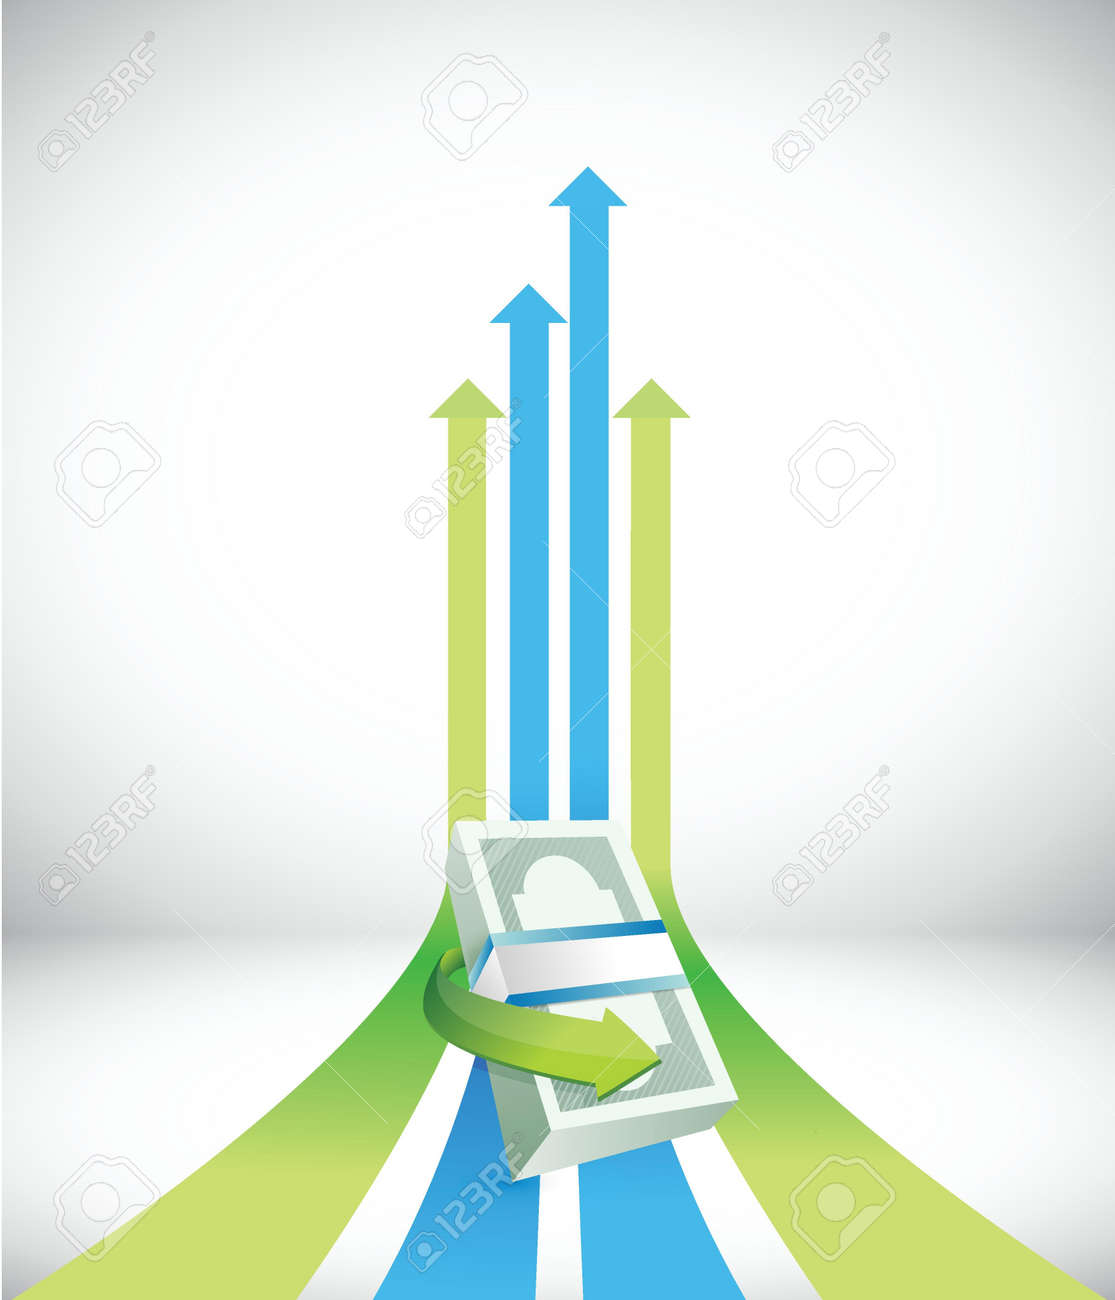 successful financial graph illustration design over a white background Stock Vector - 18857696